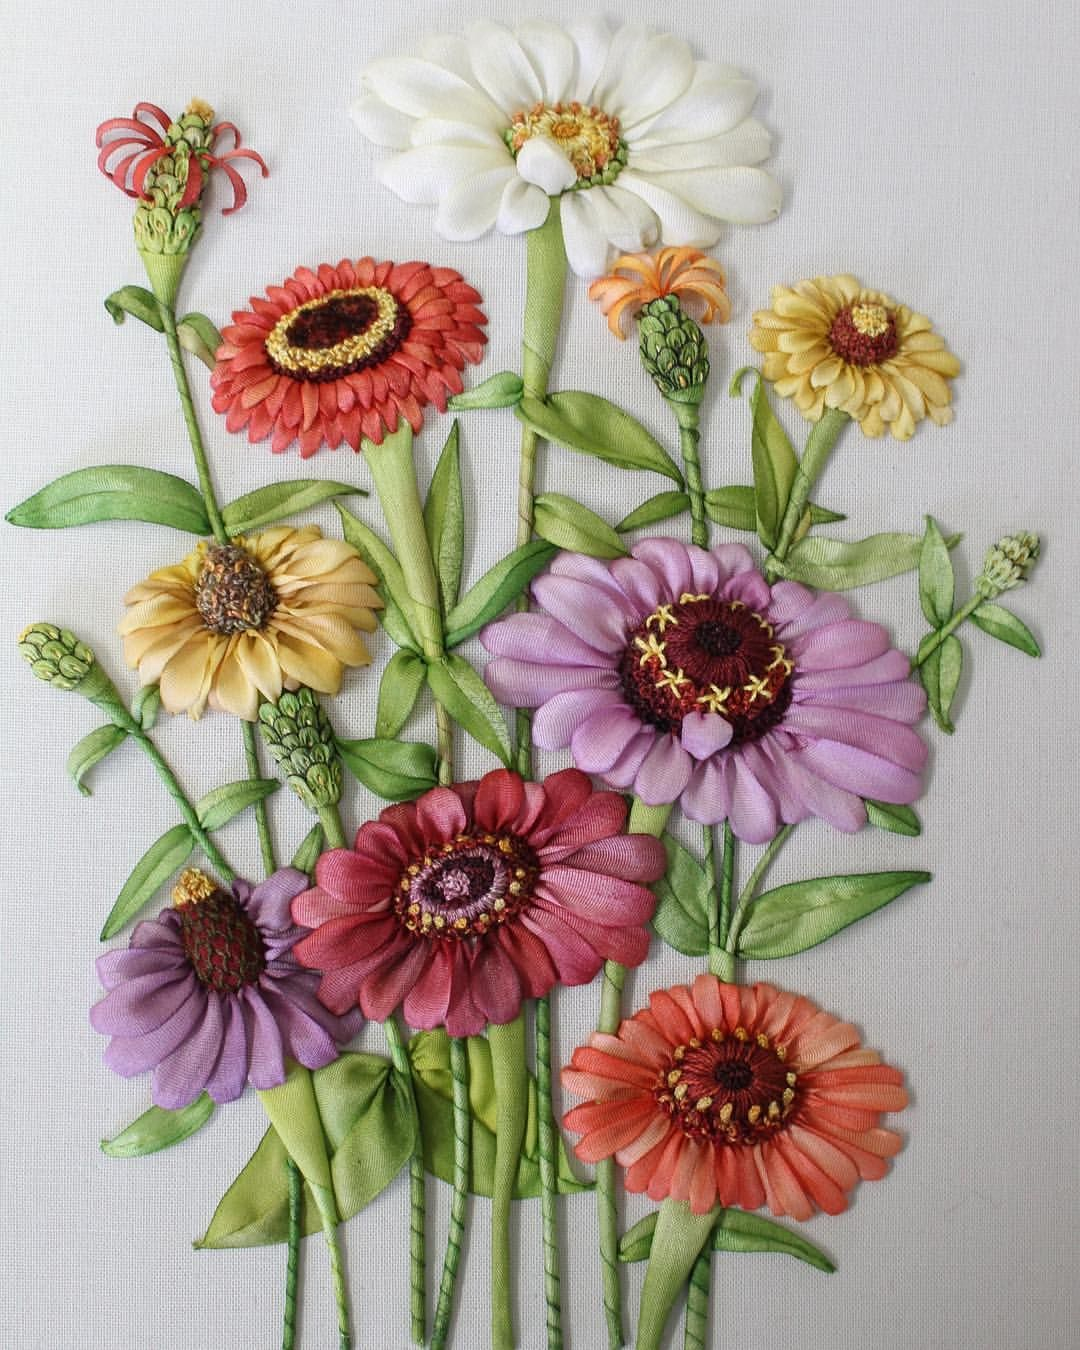 Silk Ribbon Embroidery : ribbon, embroidery, Ribbon, Embroidery, Zinnias, Stephanie, Williams, Patterns,, Tutorial,